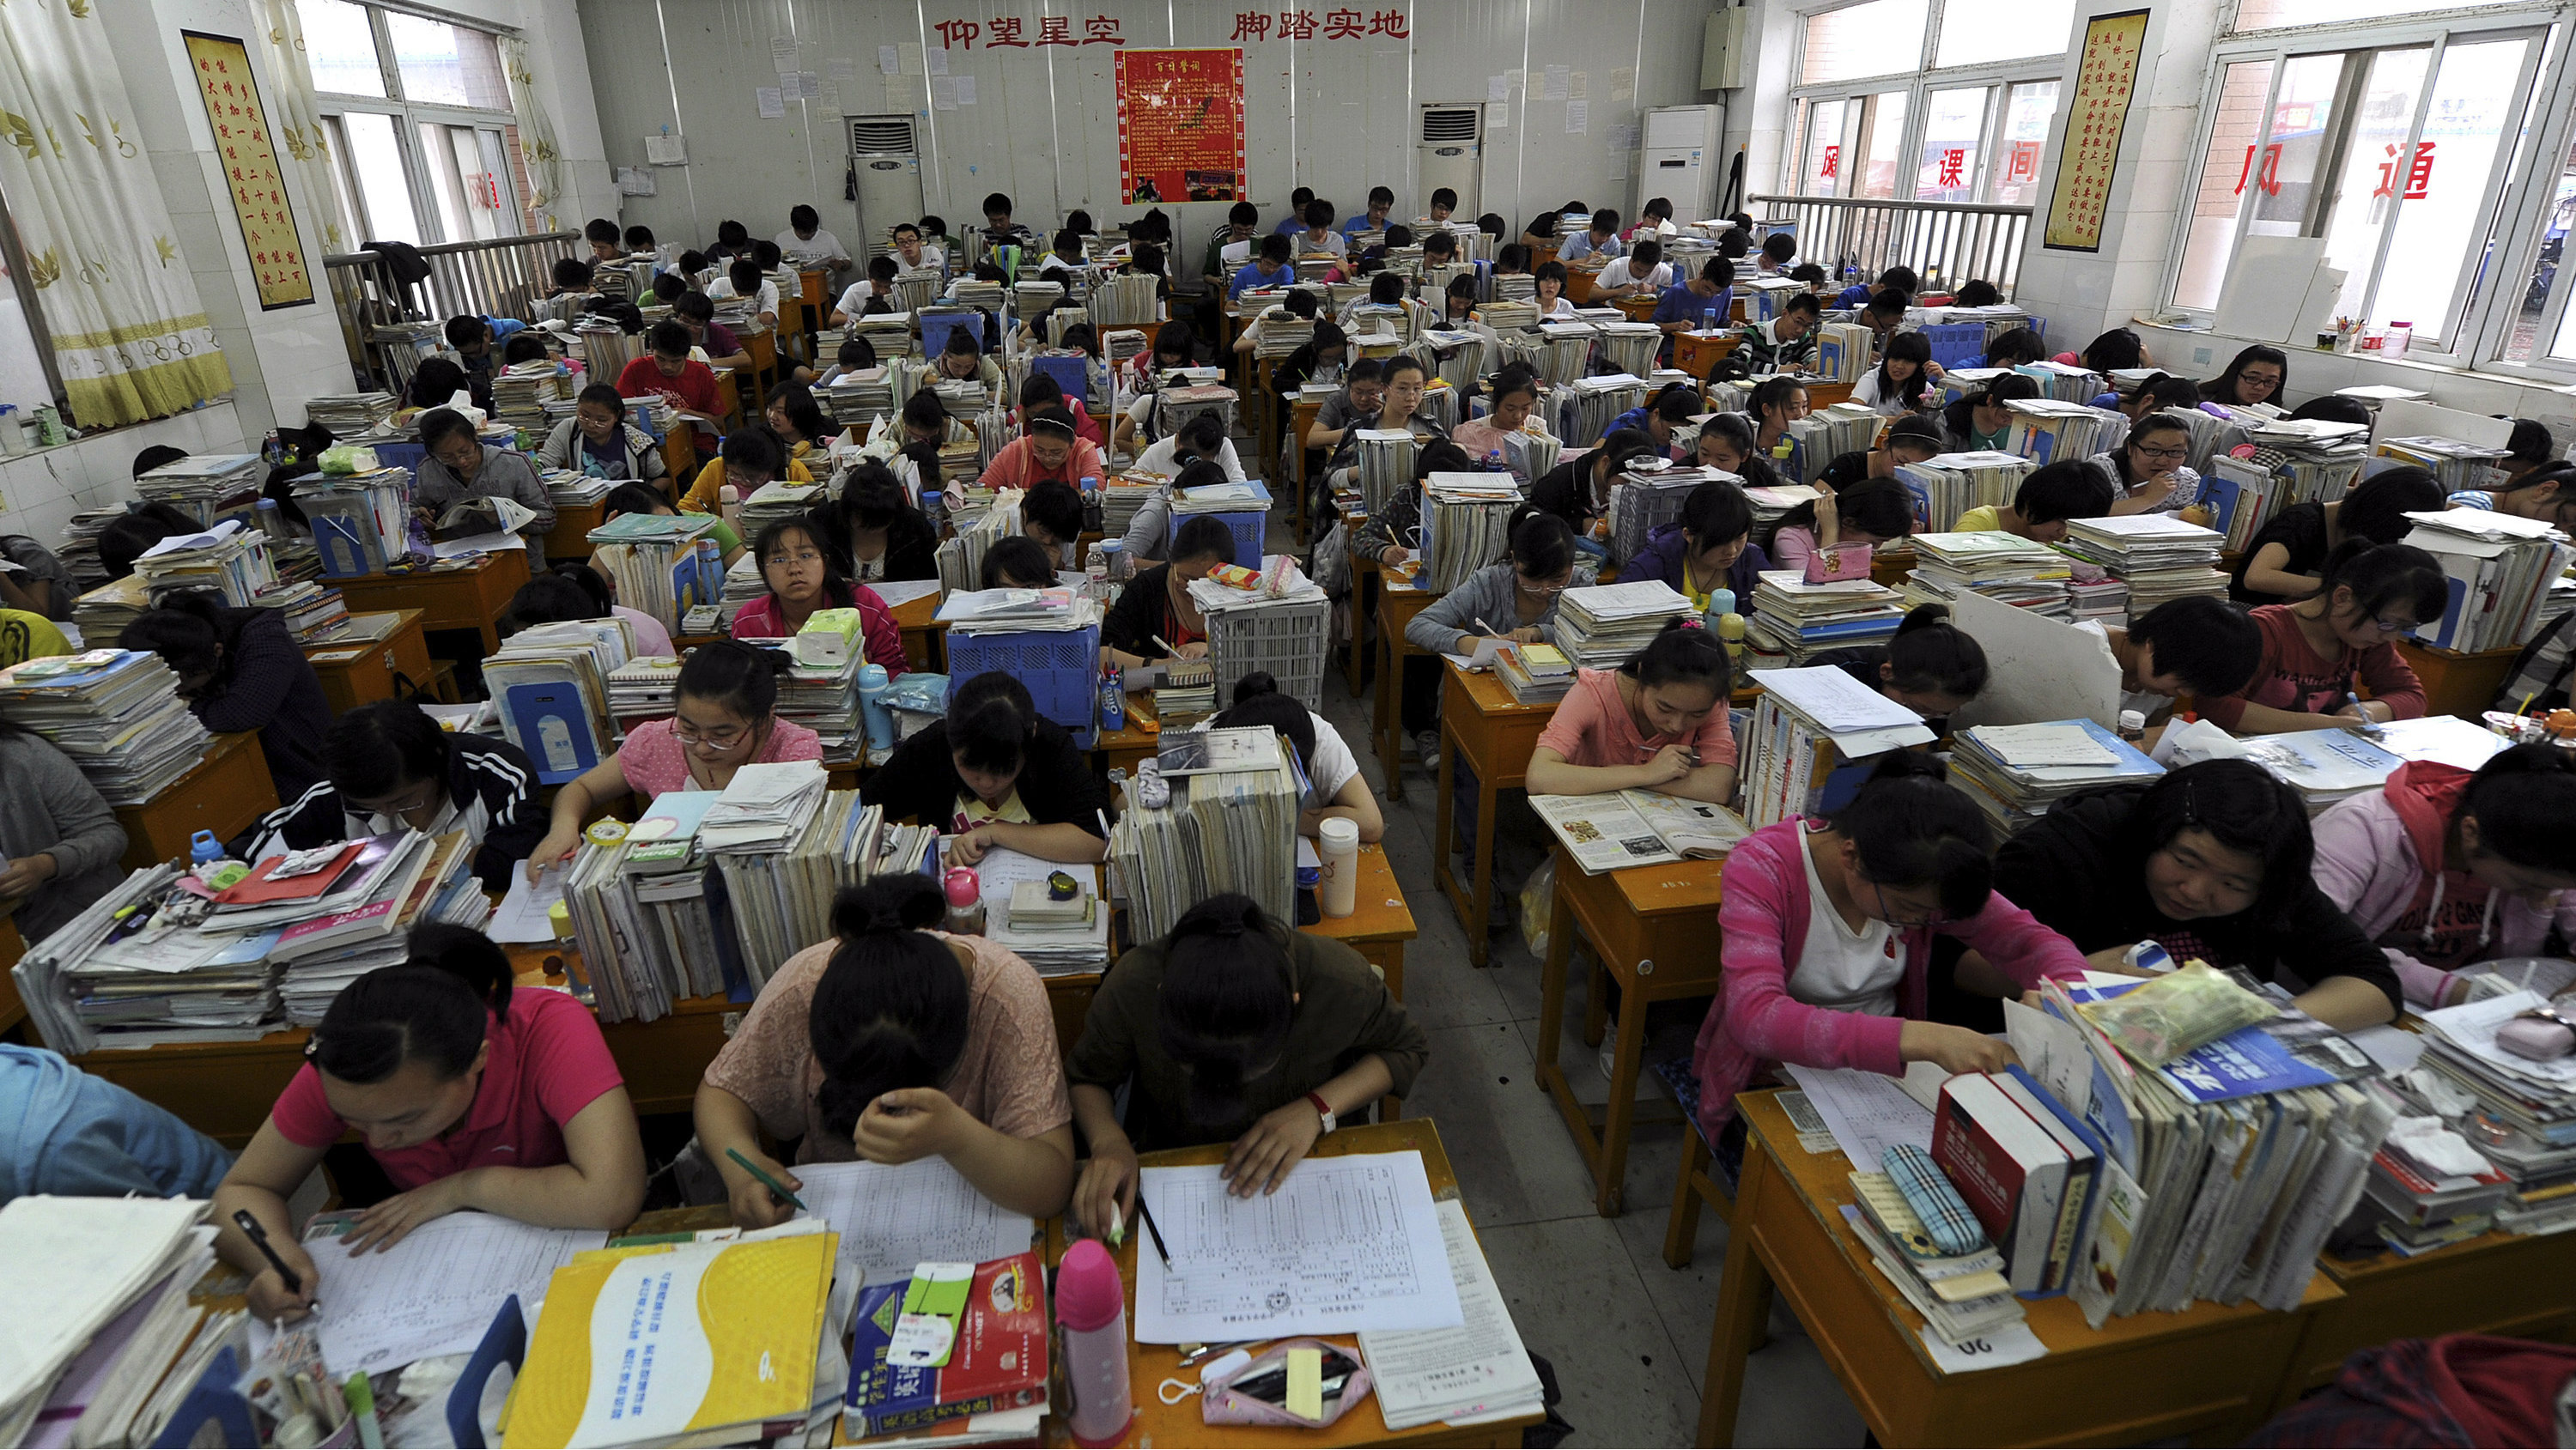 Students prepare for the university entrance exam in a classroom in Hefei